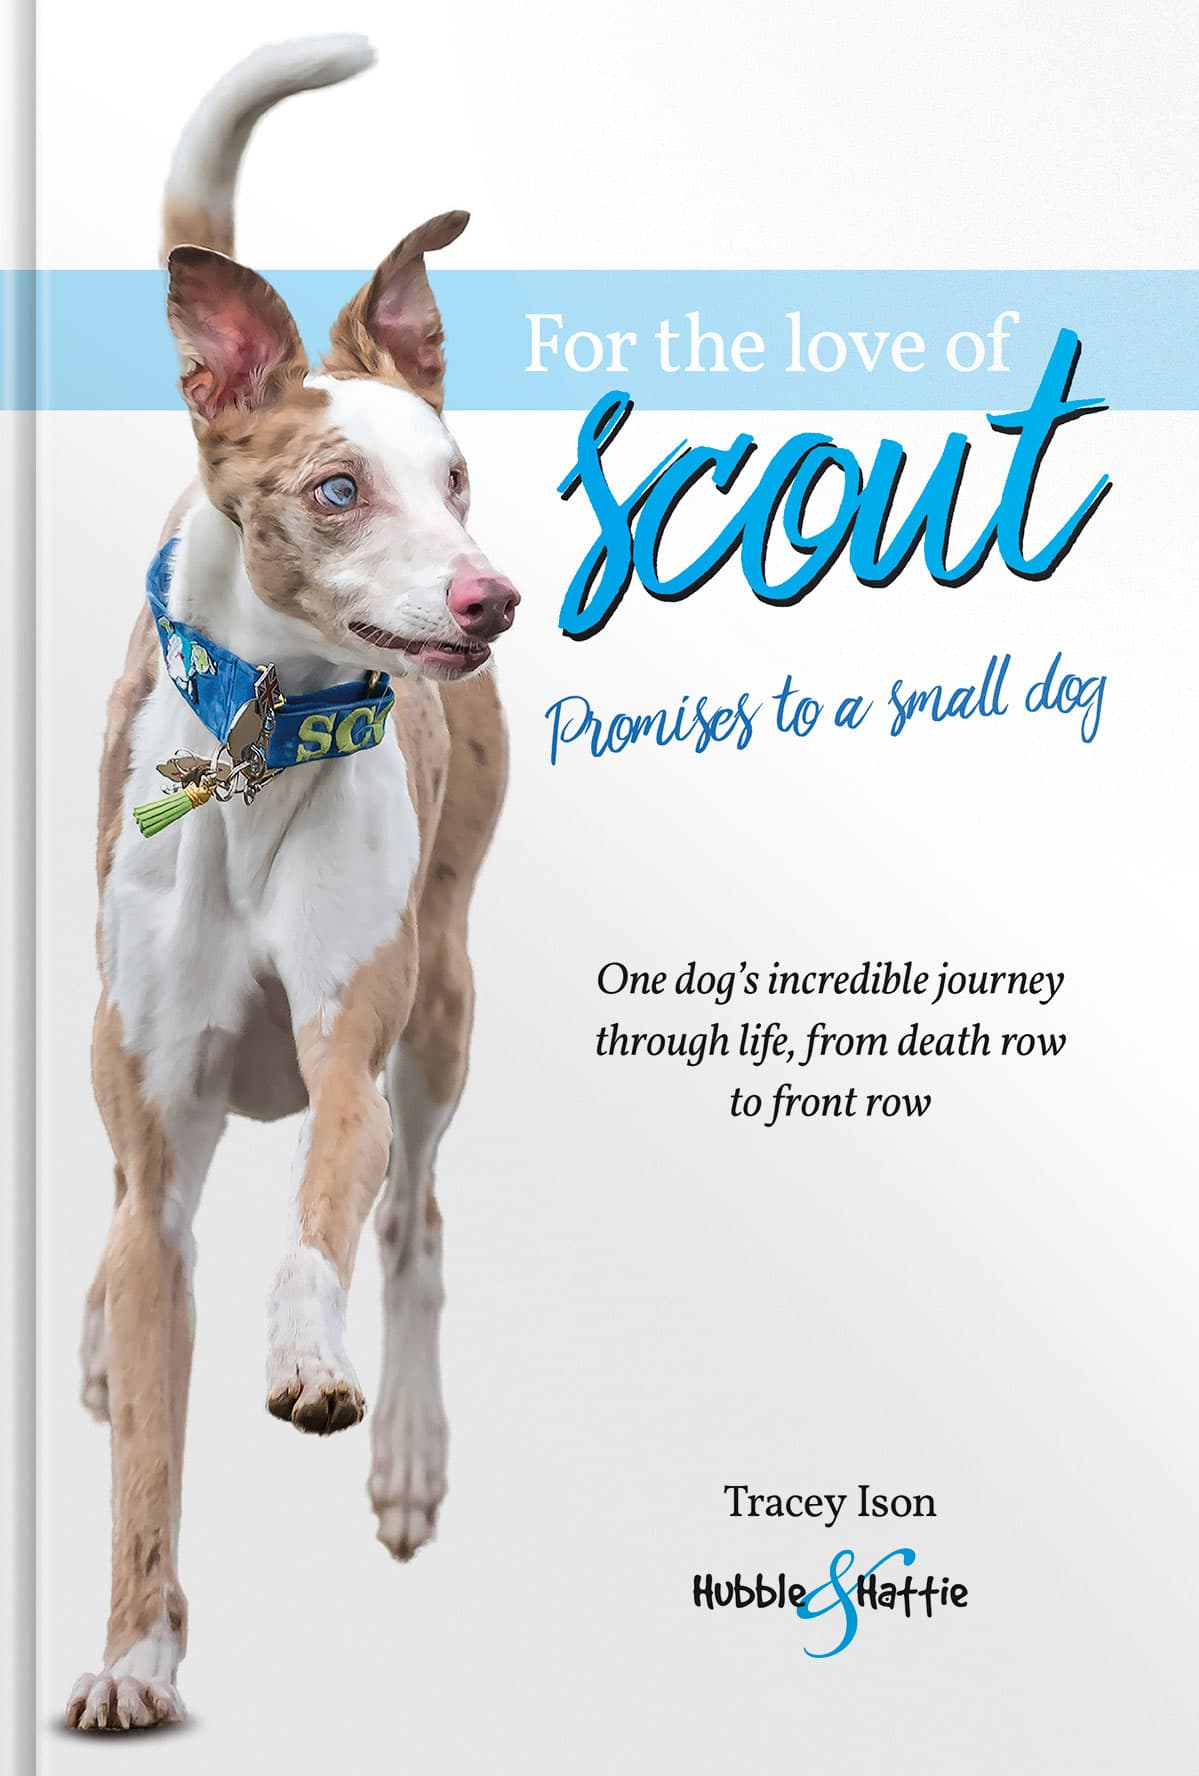 For the love of Scout – Promises to a small dog